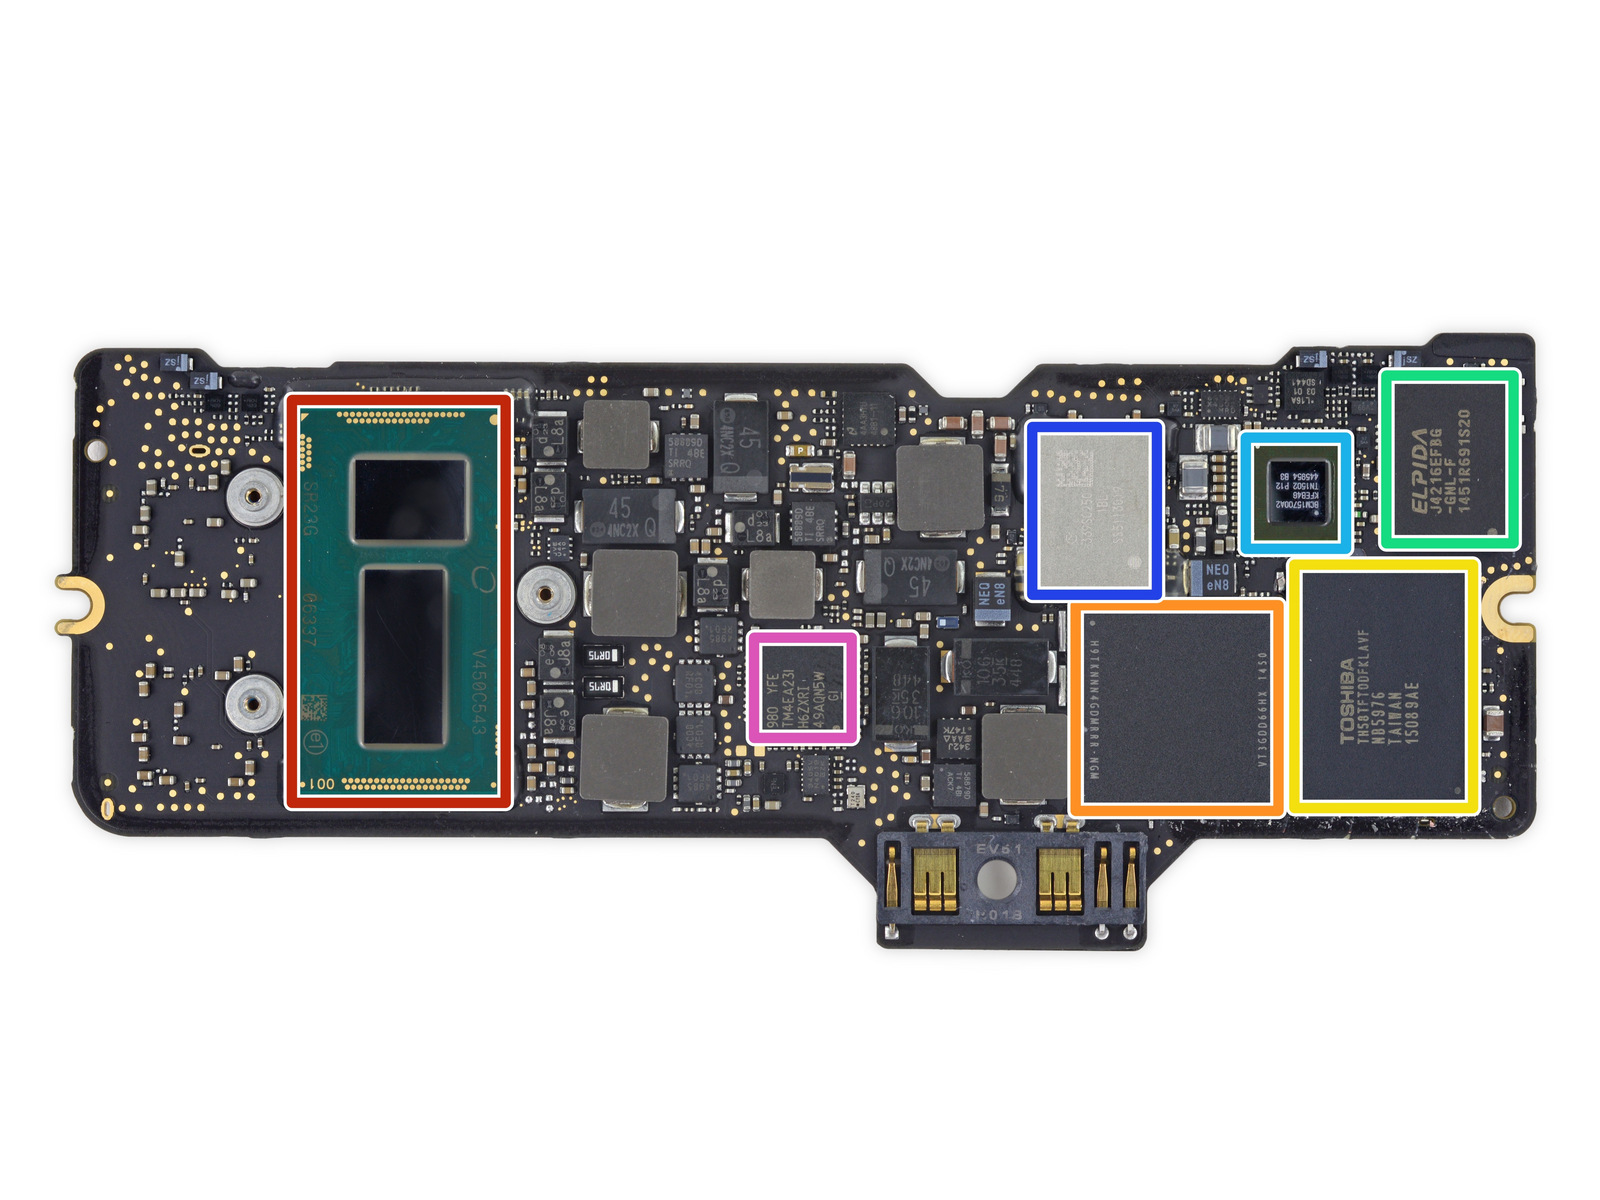 The CPU side of the logic board. It has various RAM chips, half of the SSD's flash, and some wireless adapters.